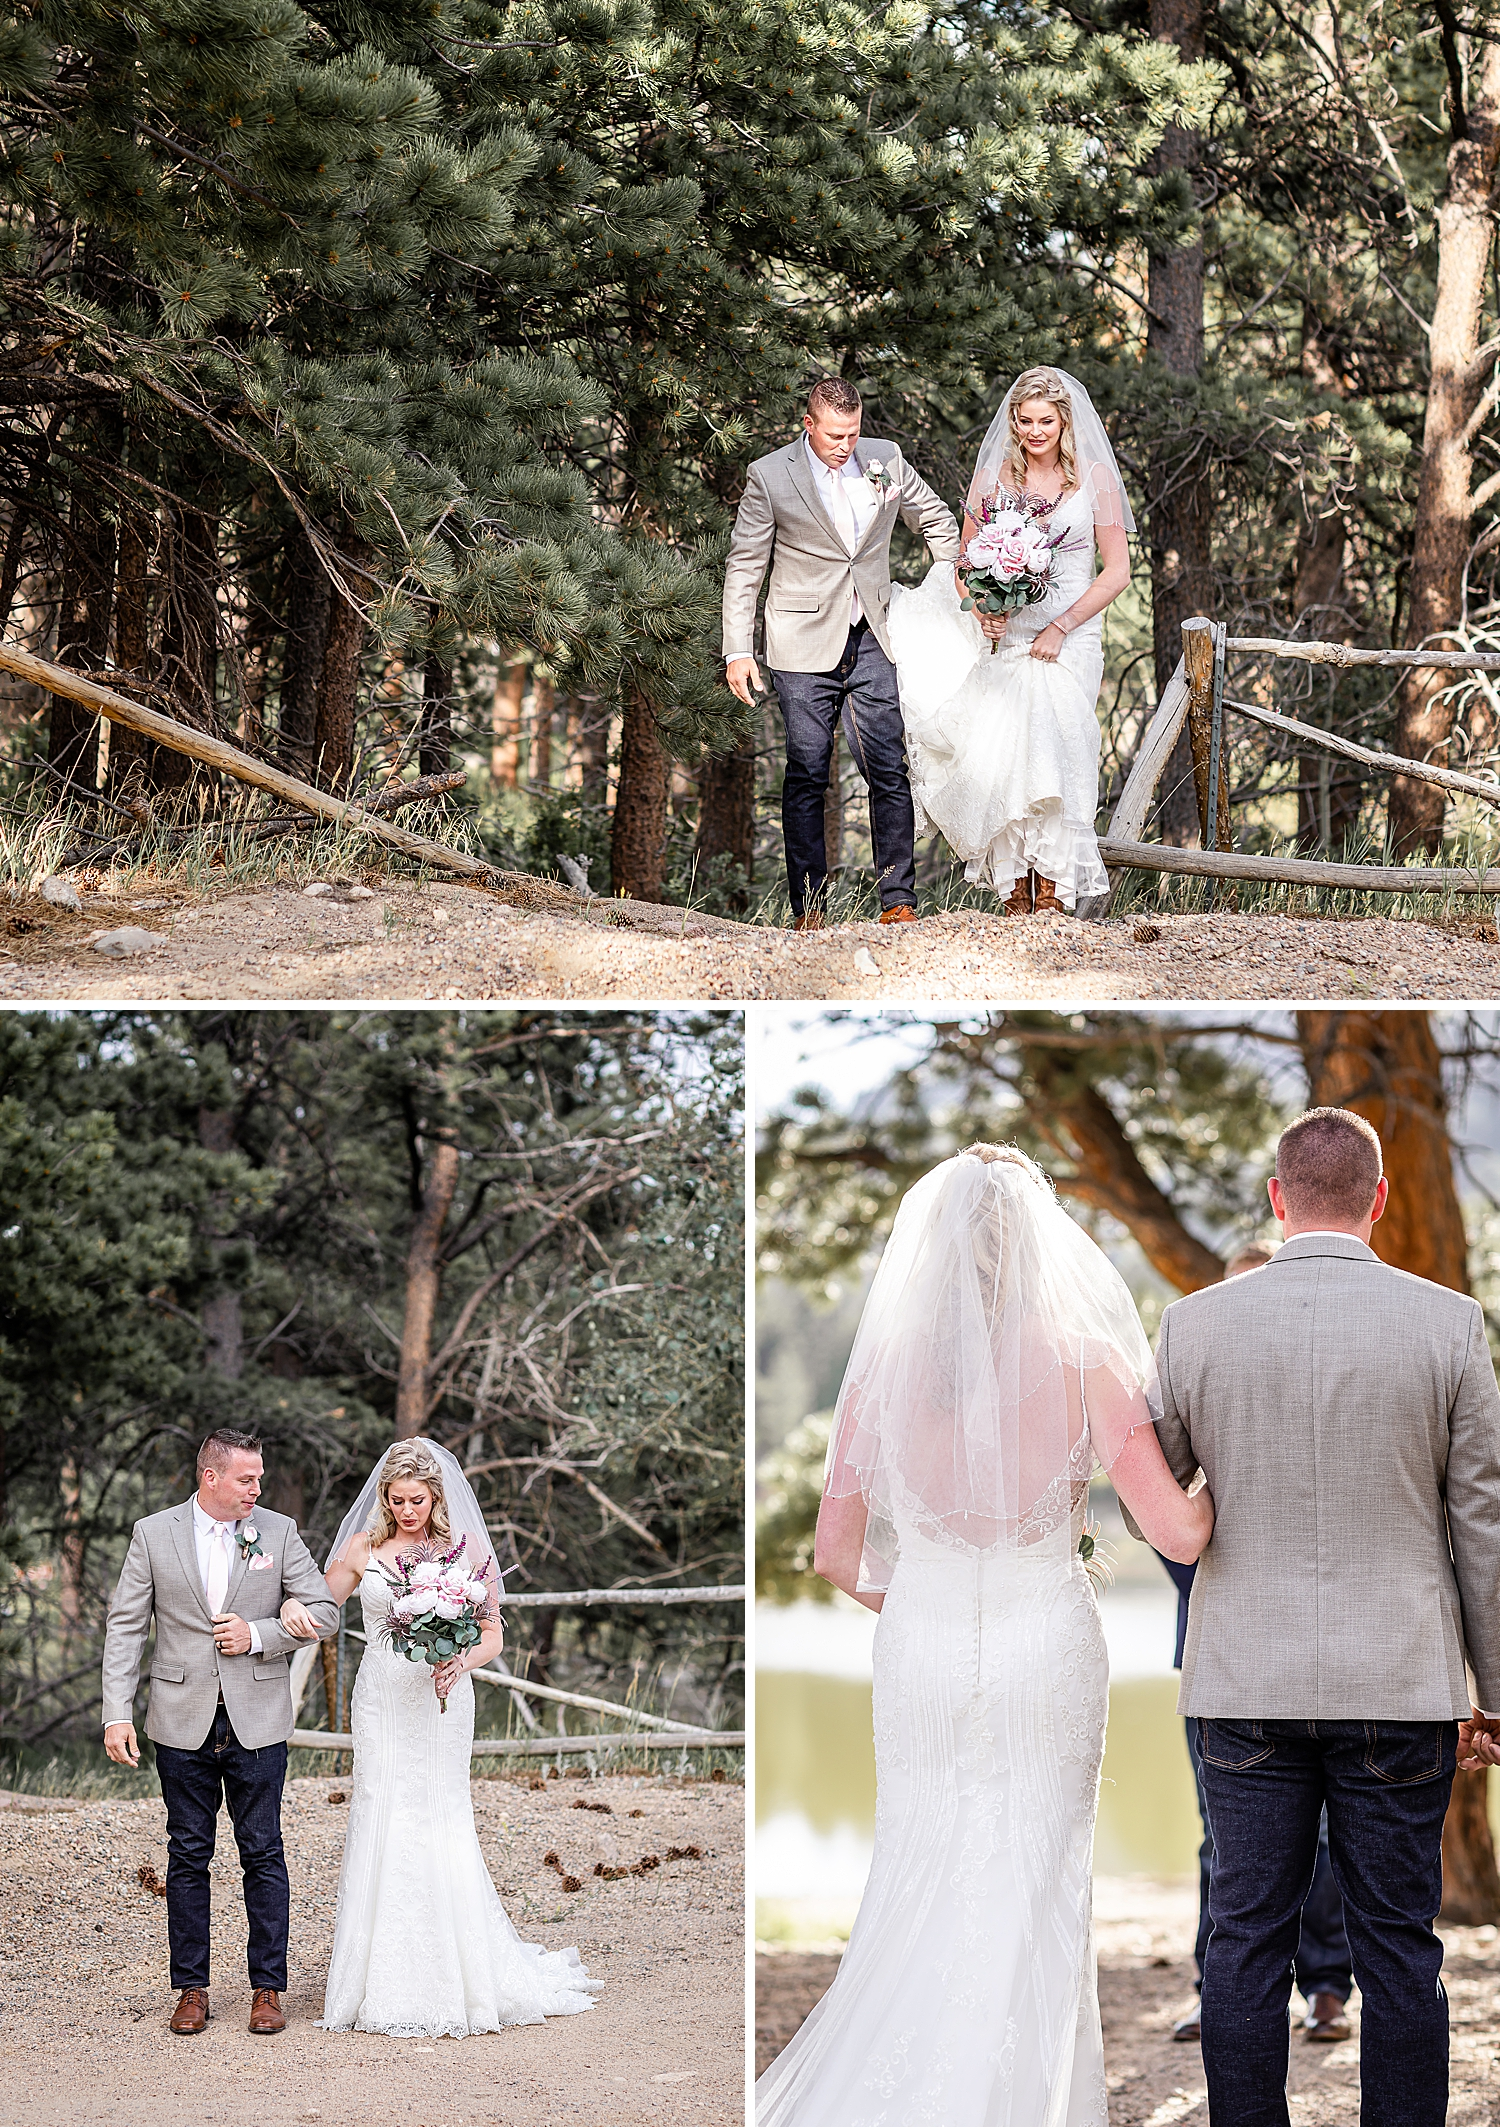 Carly-Barton-Photography-Rocky-Mountain-National-Park-Estes-Park-Wedding-Elopement_0100.jpg